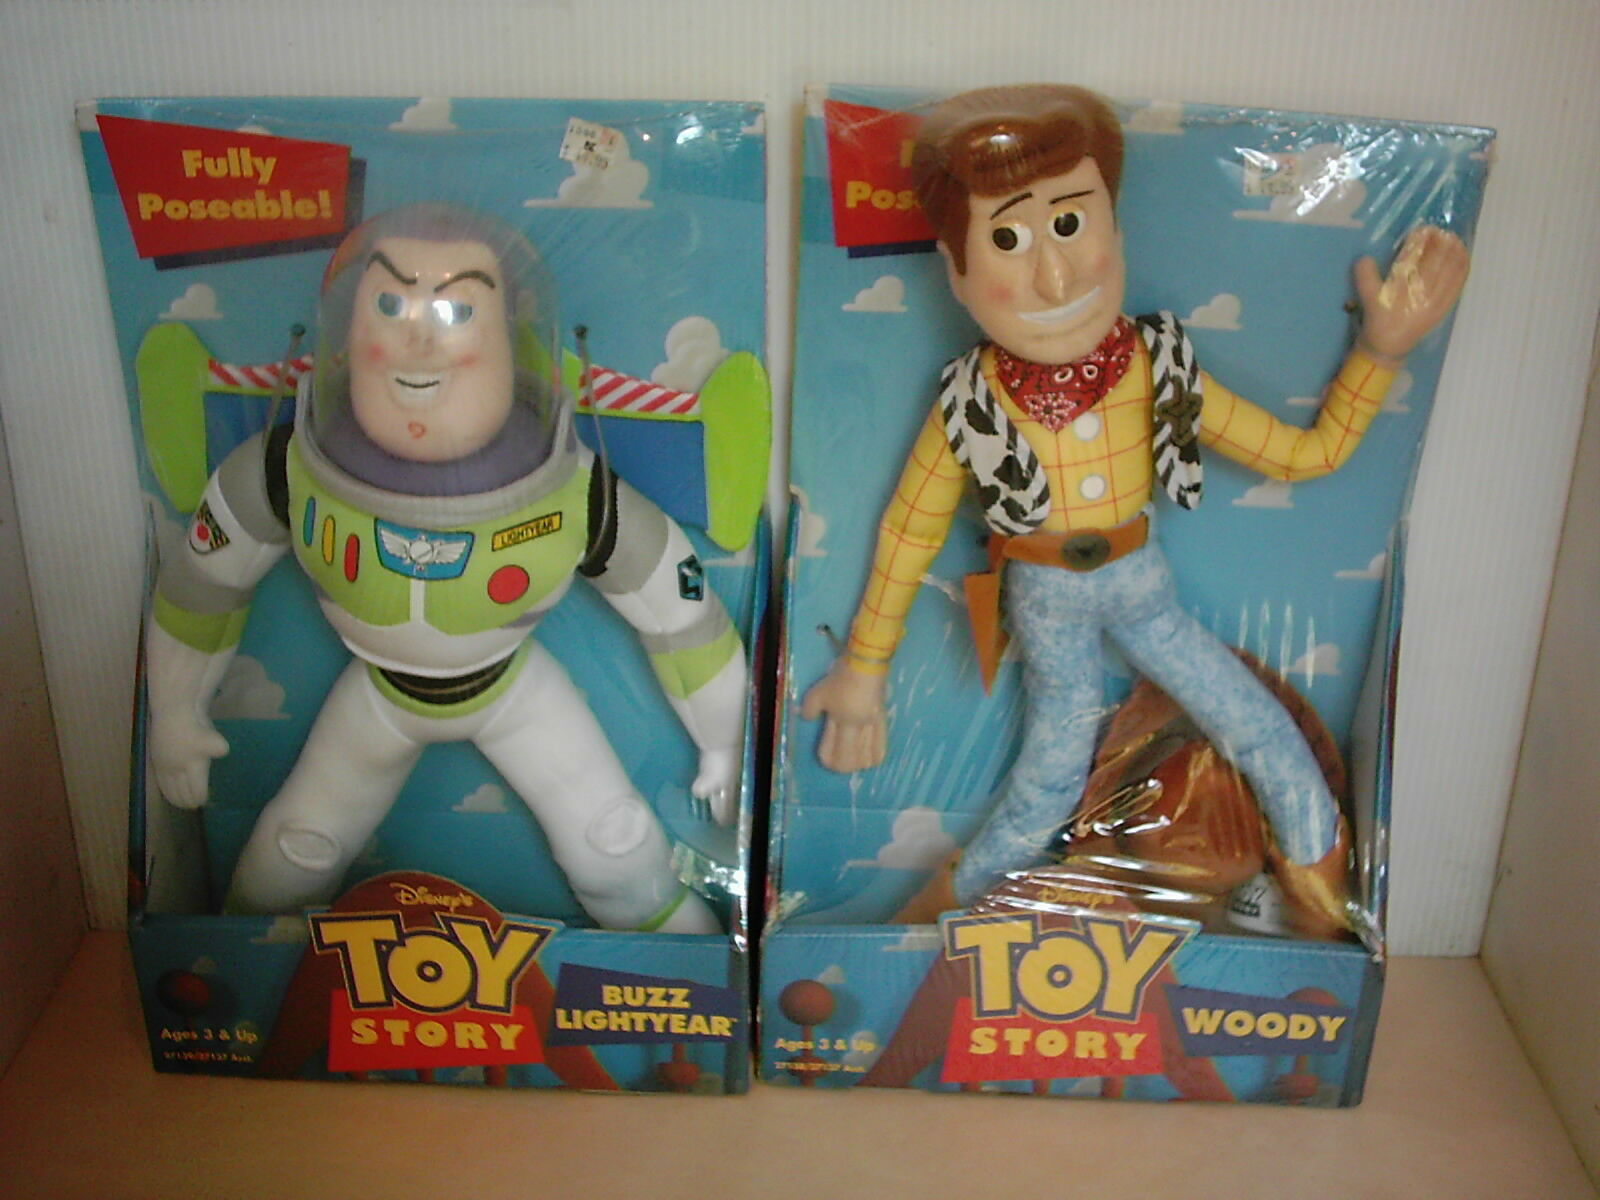 Toy Story Rare Woody & Buzz Fully Poseable Plush Figures Set of 2 1996 New